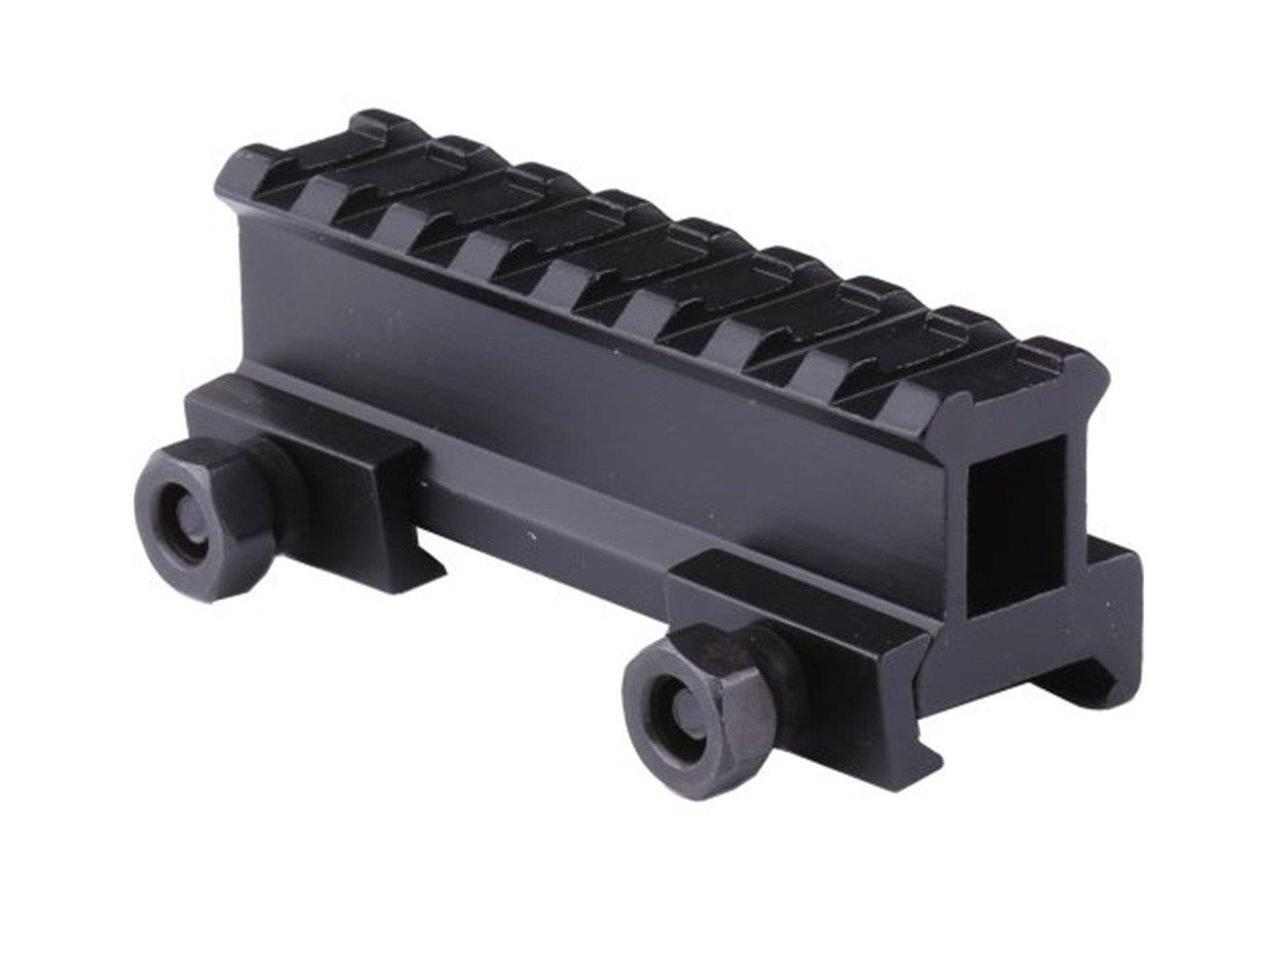 Tactical  1inch Riser Base Rail Mount